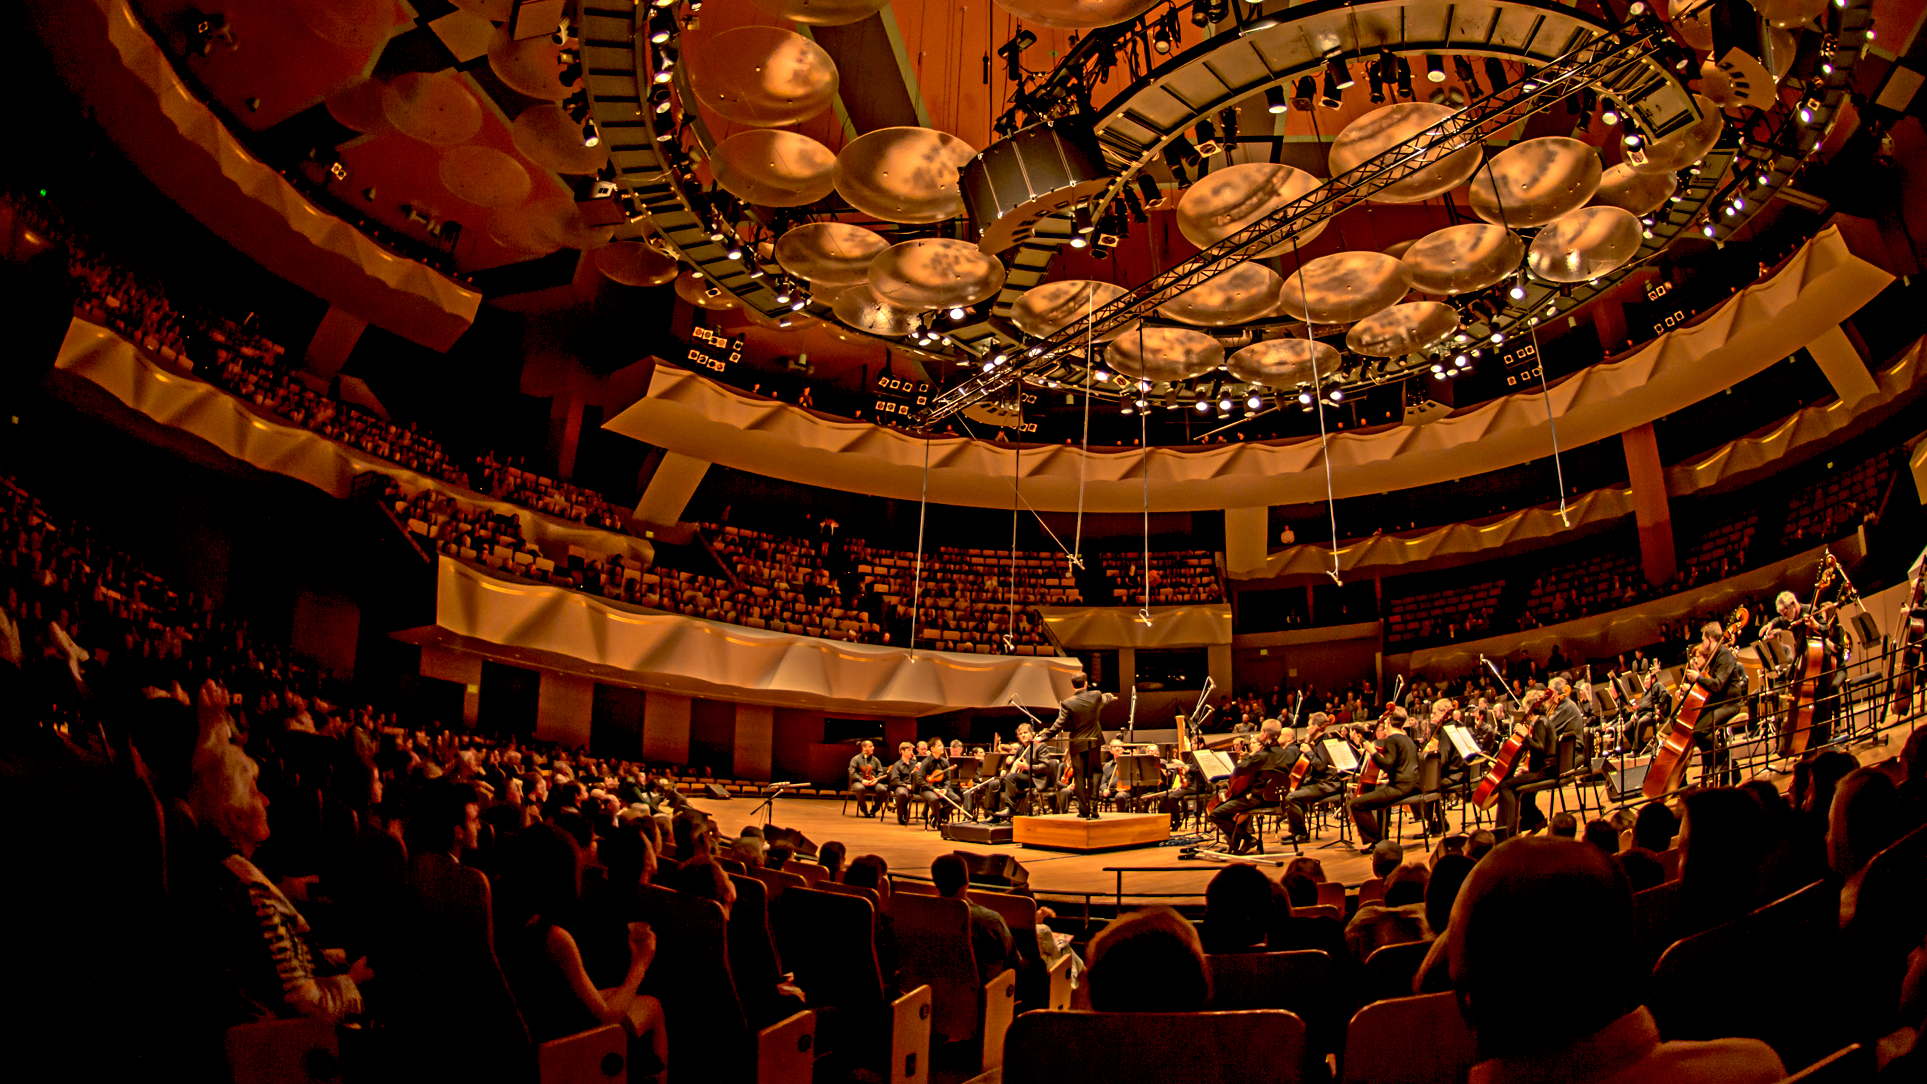 Photo: Boettcher Concert Hall